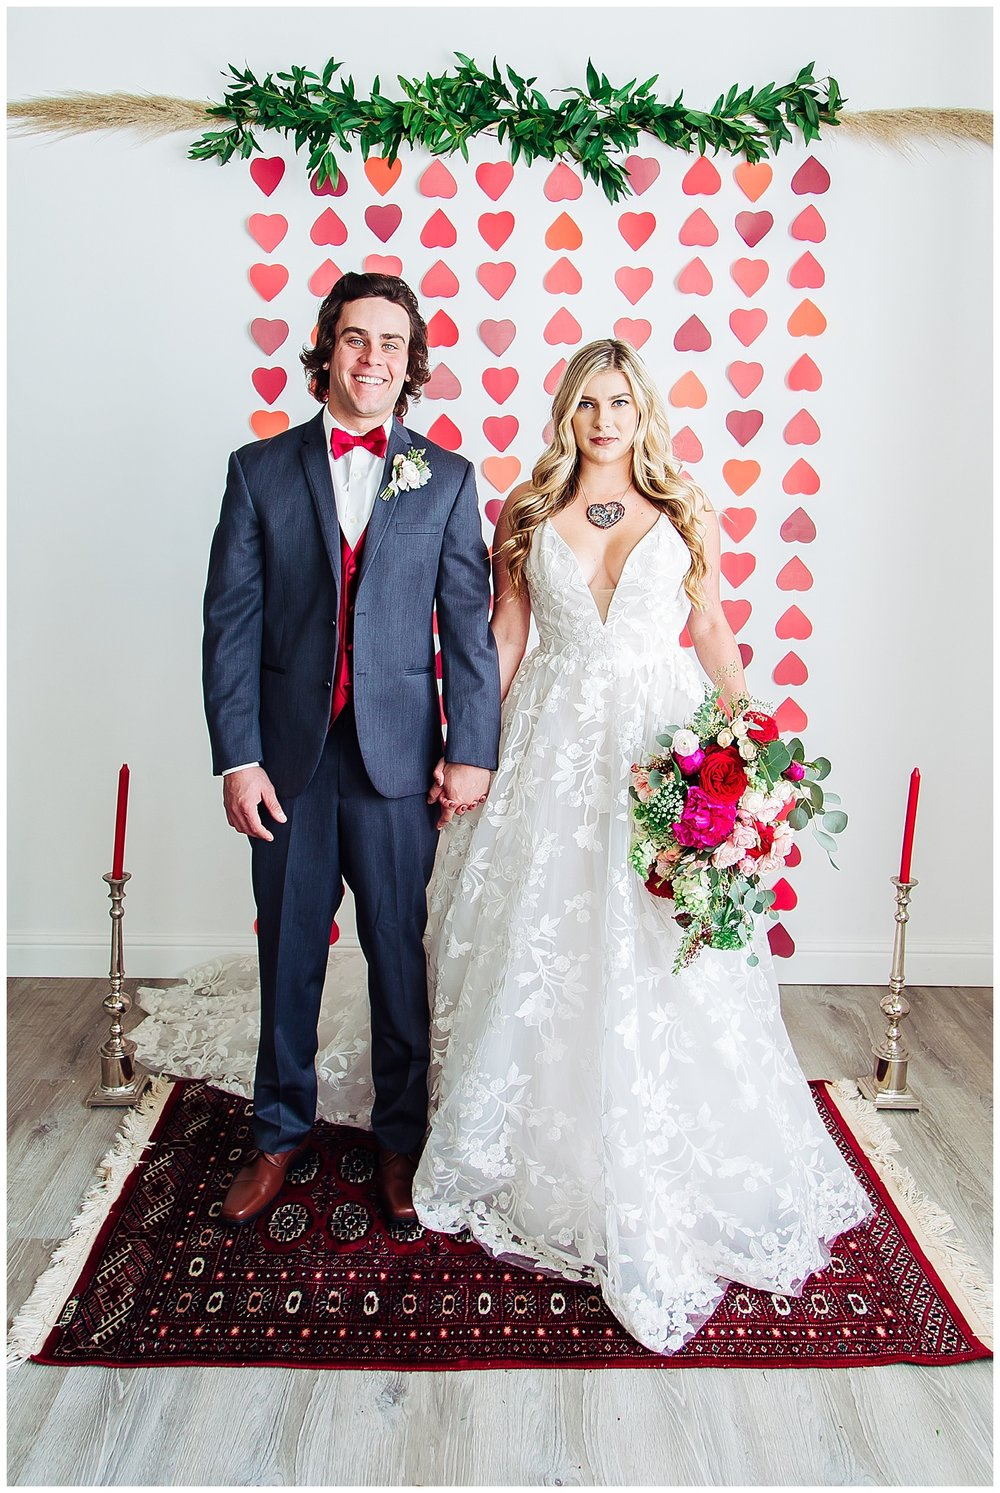 kelley williams photography valentines 2018 wedding